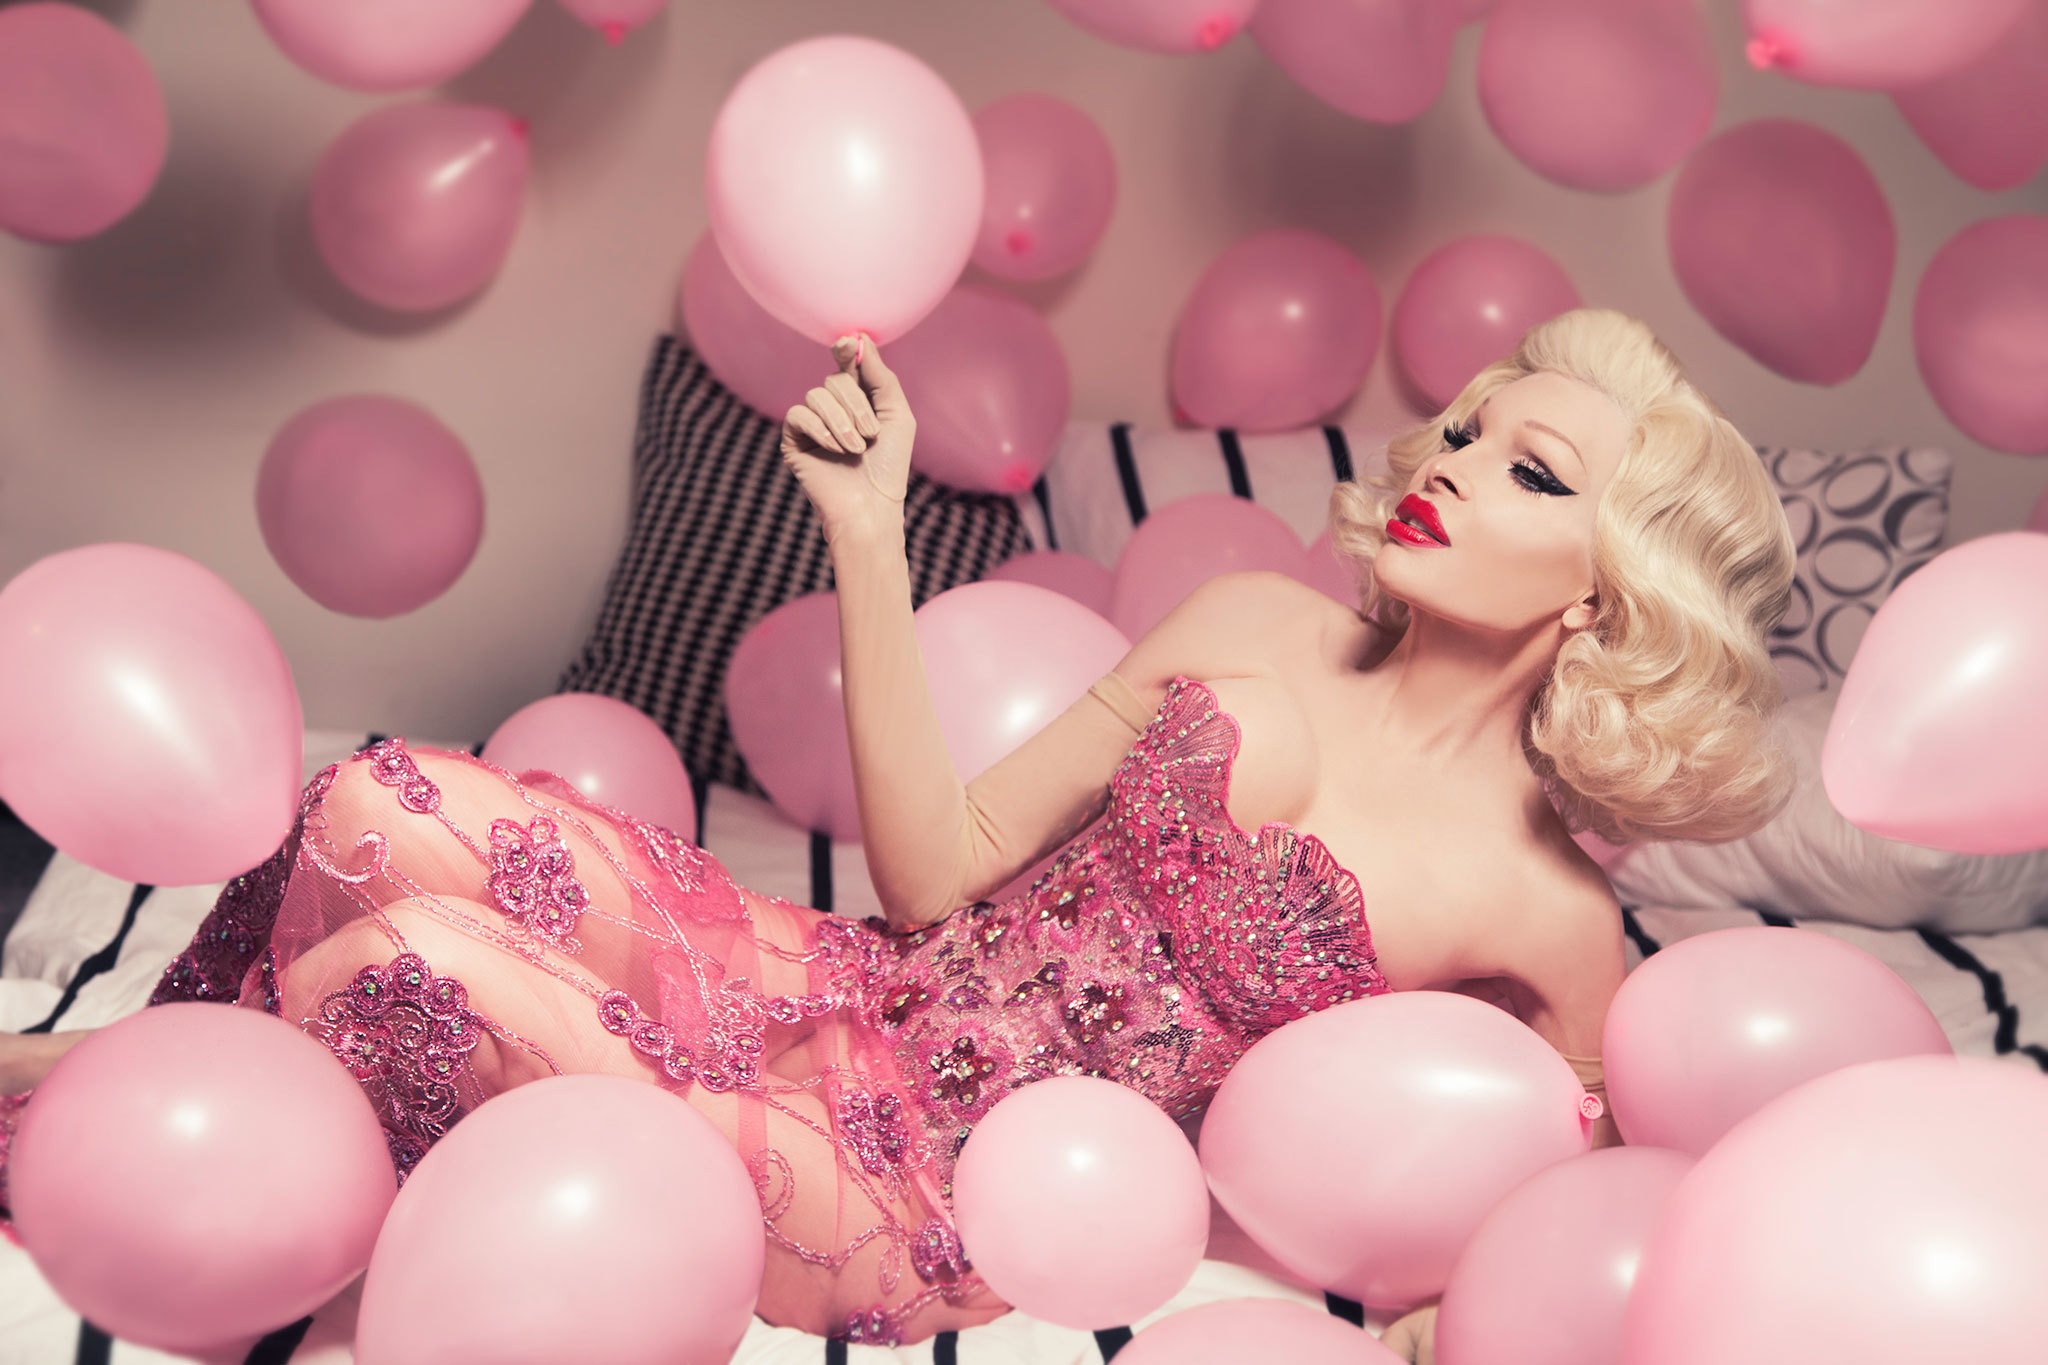 Amanda Lepore talks new book, transgender rights movement and more